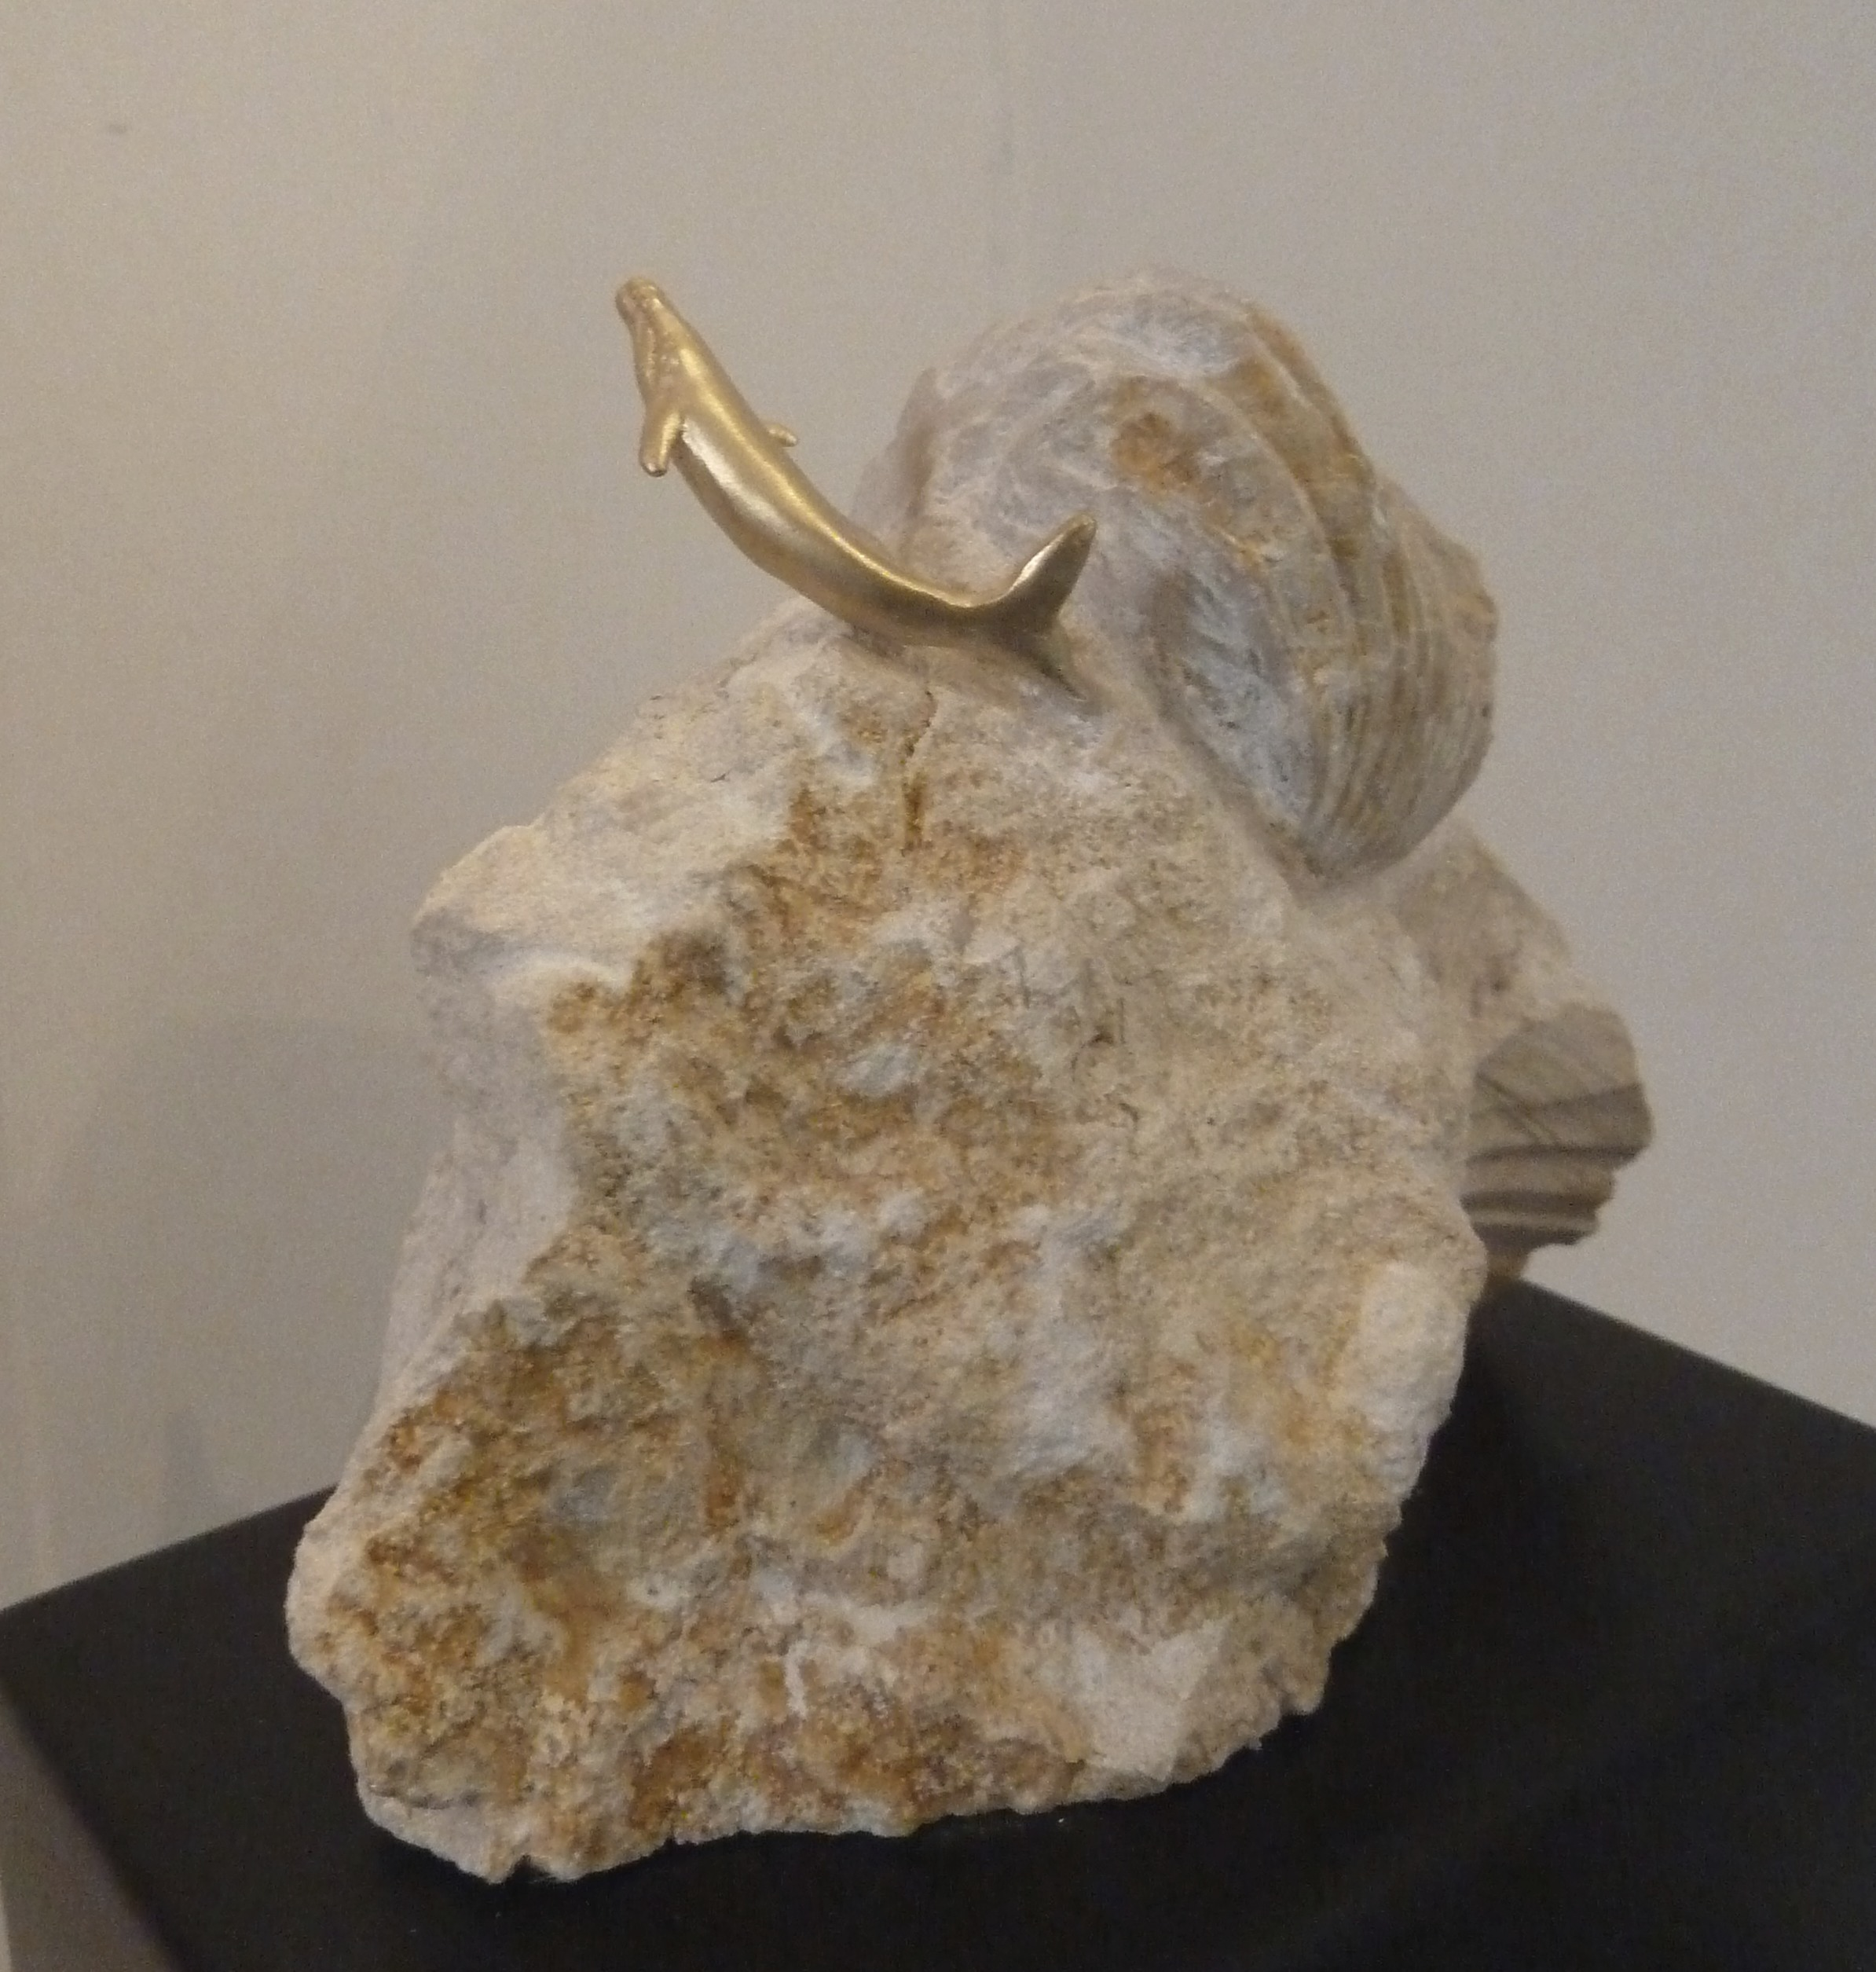 "Poetry in the Sea, 14k, Shell fossil, Belgian marble. 9""x3""x2"". $1,300."